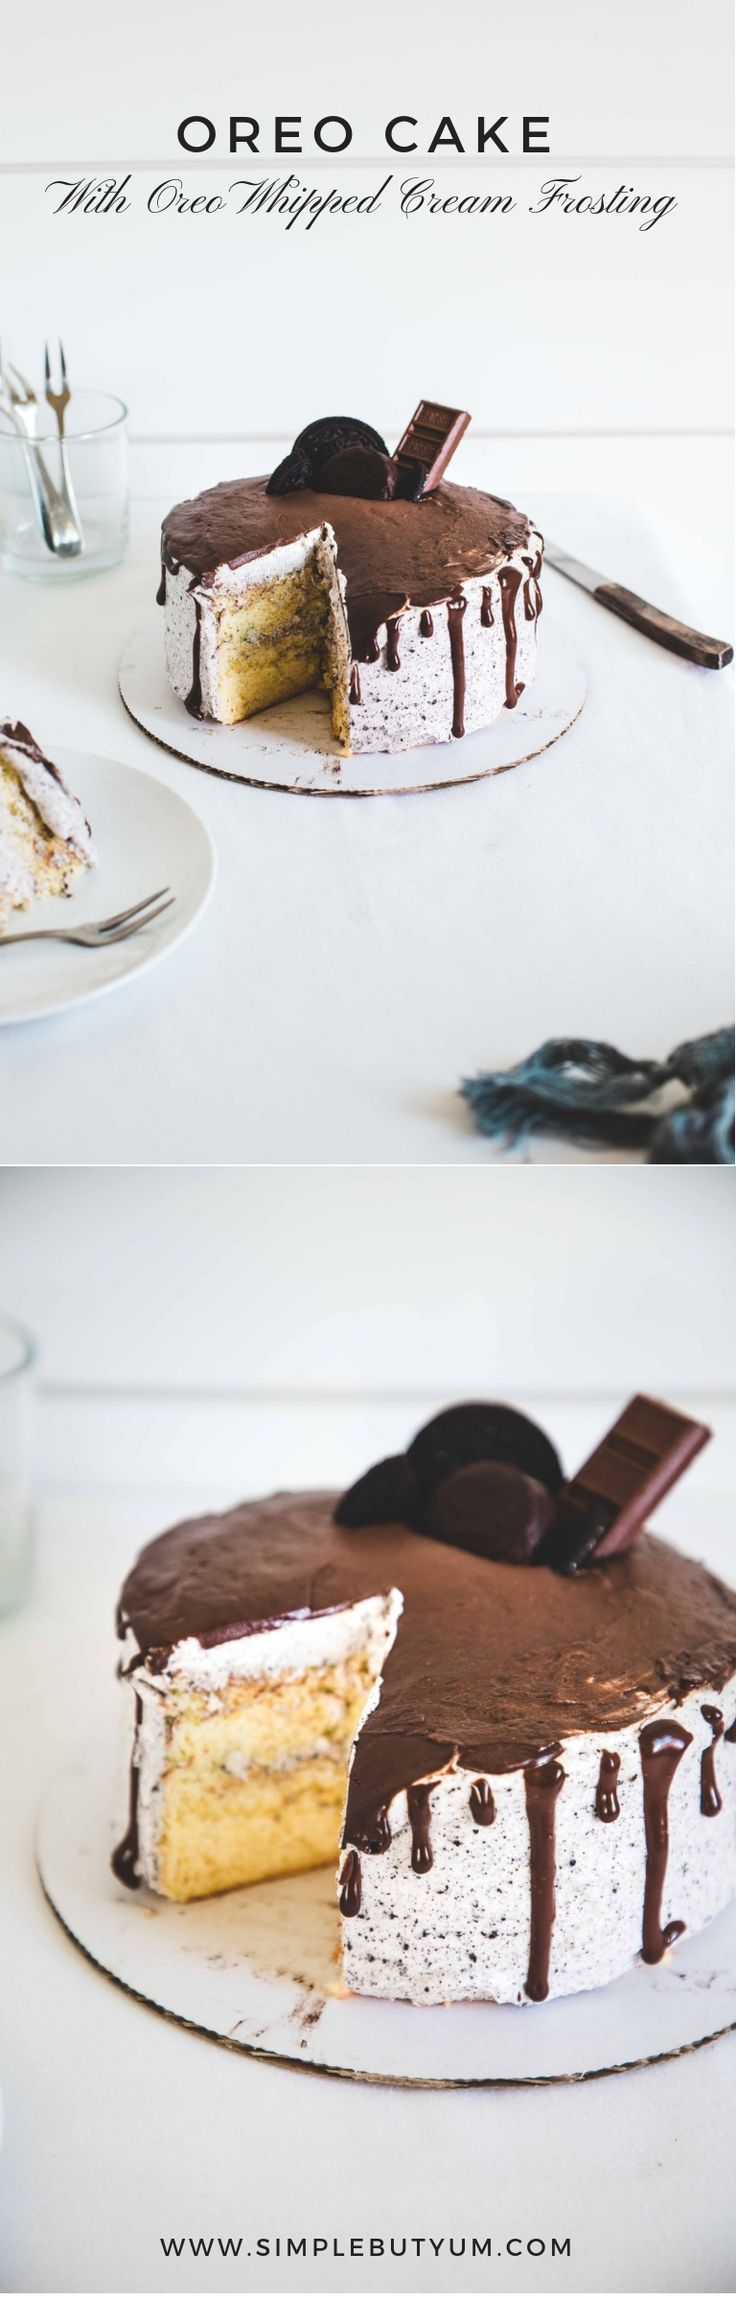 Soft and moist cake with creamest heavy whipped cream includes Oreo crushes. It is an easy and simple cake for Oreo love…